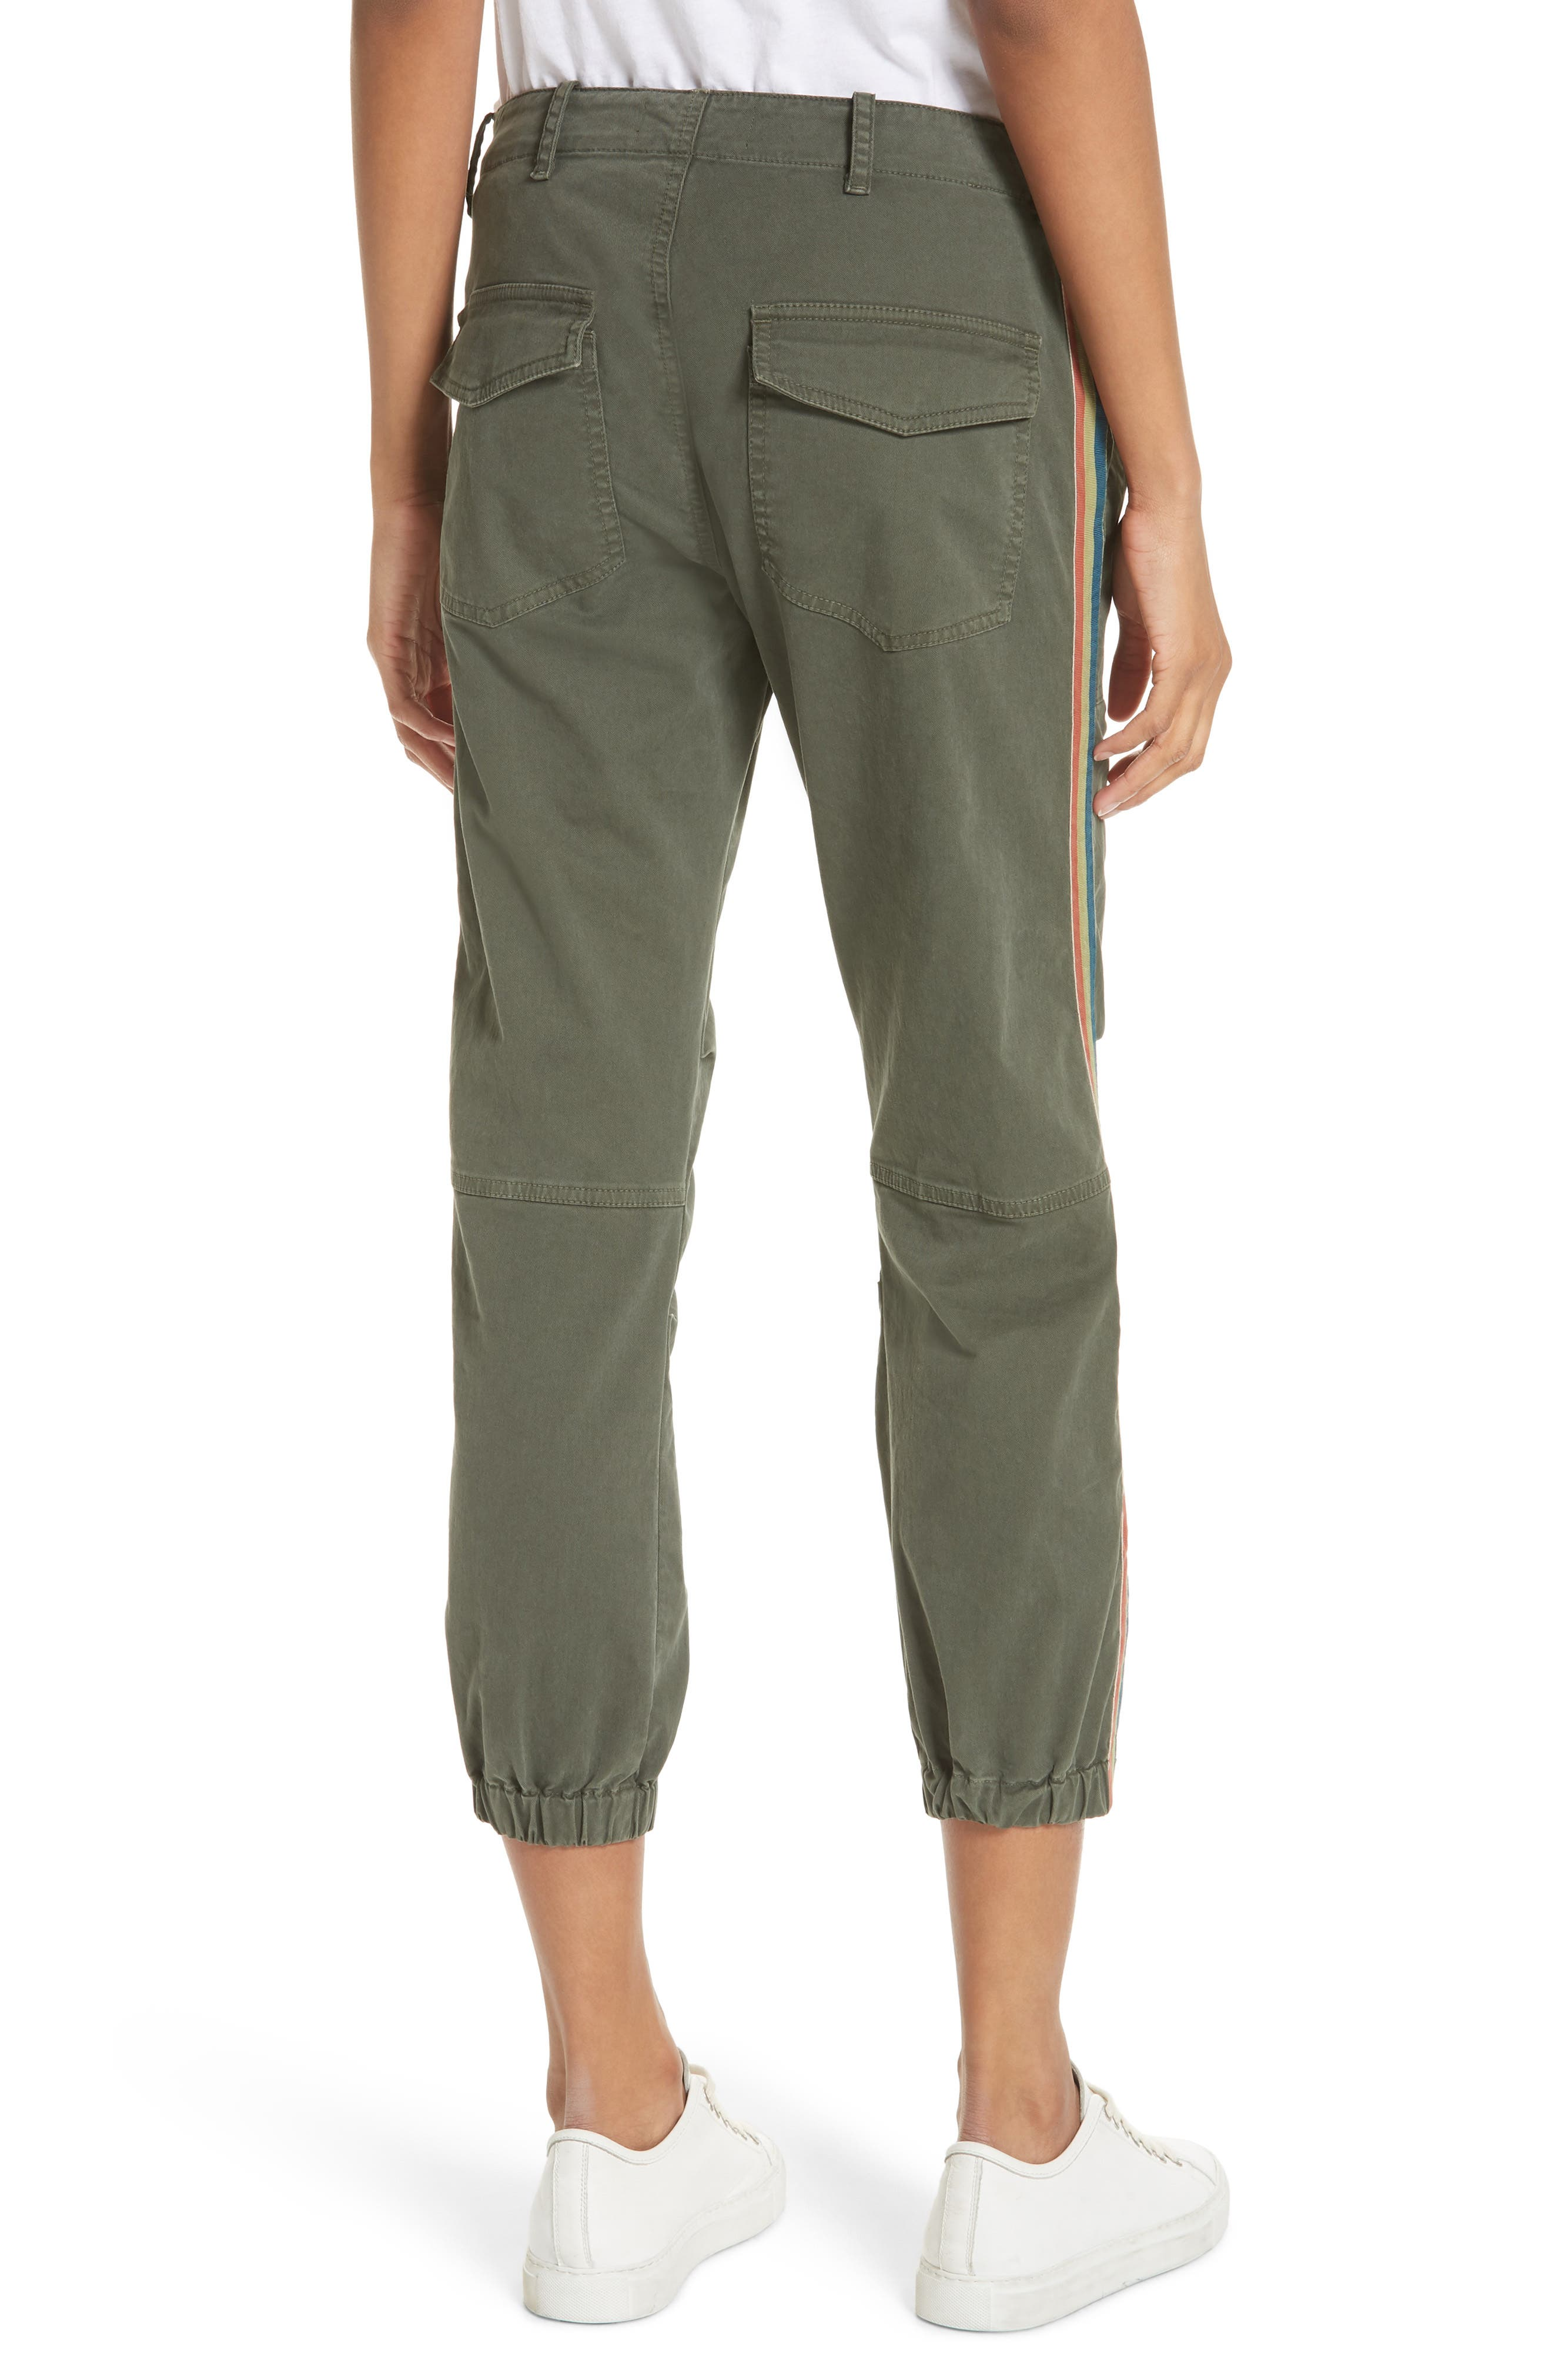 French Crop Military Pants,                             Alternate thumbnail 2, color,                             308